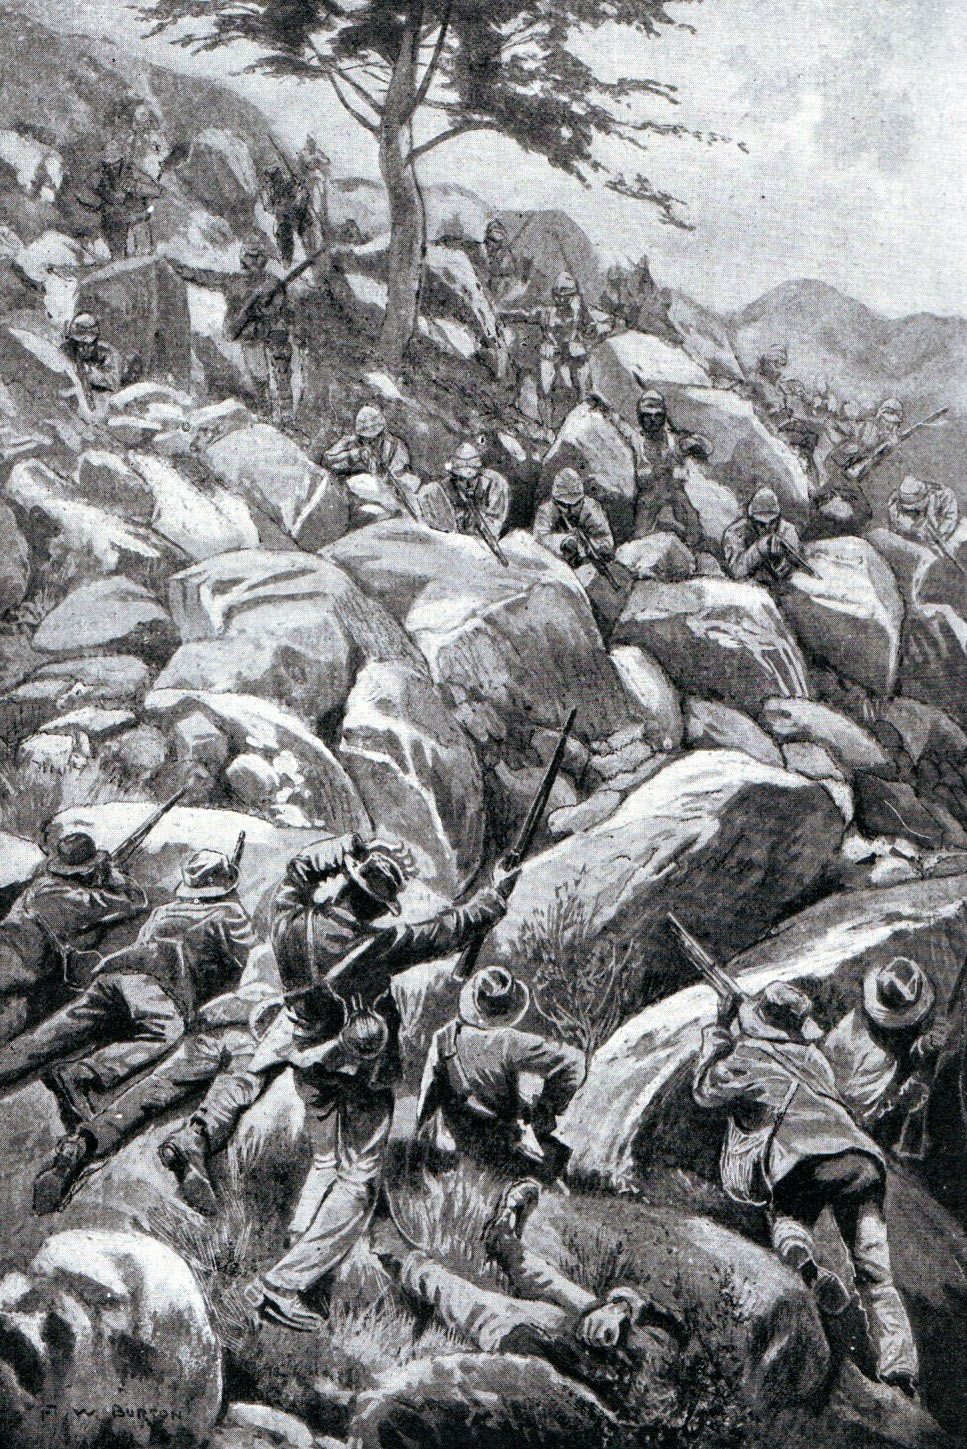 Boer attack on Caesar's Camp on 6th January 1900: Siege of Ladysmith, 2nd November 1899 to 27th February 1900 in the Great Boer War